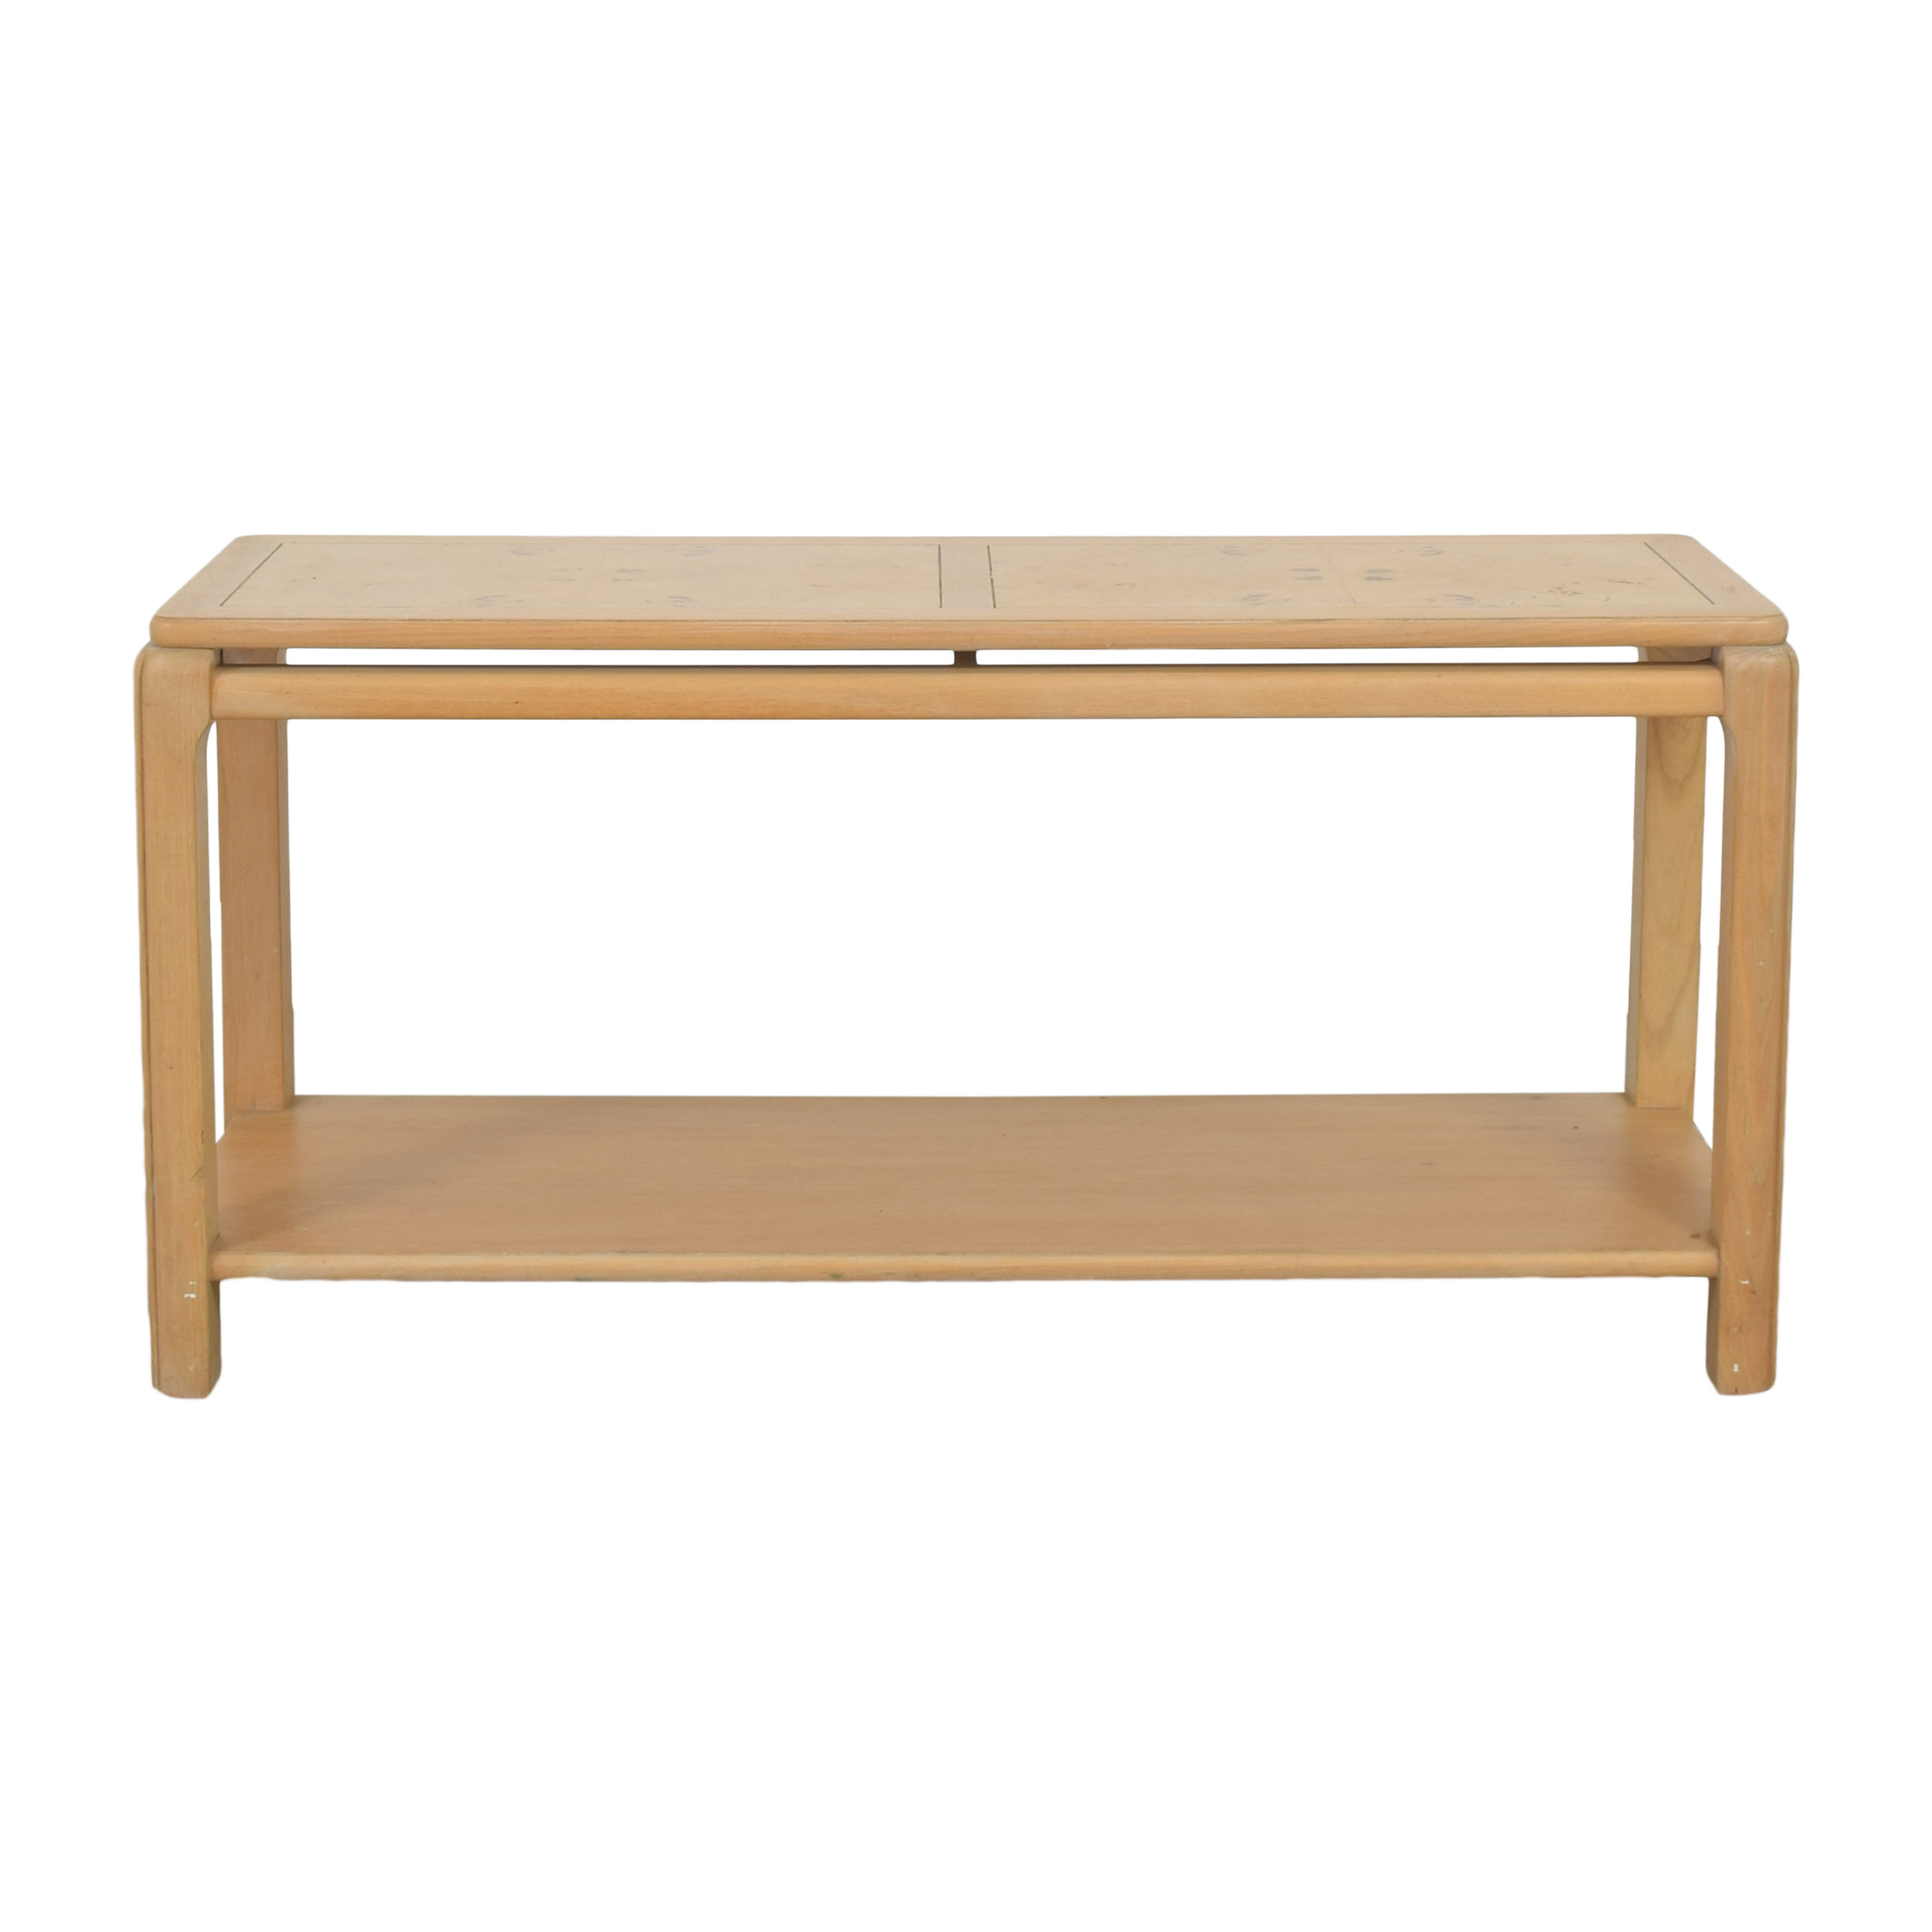 Lane Furniture Sofa Table / Tables